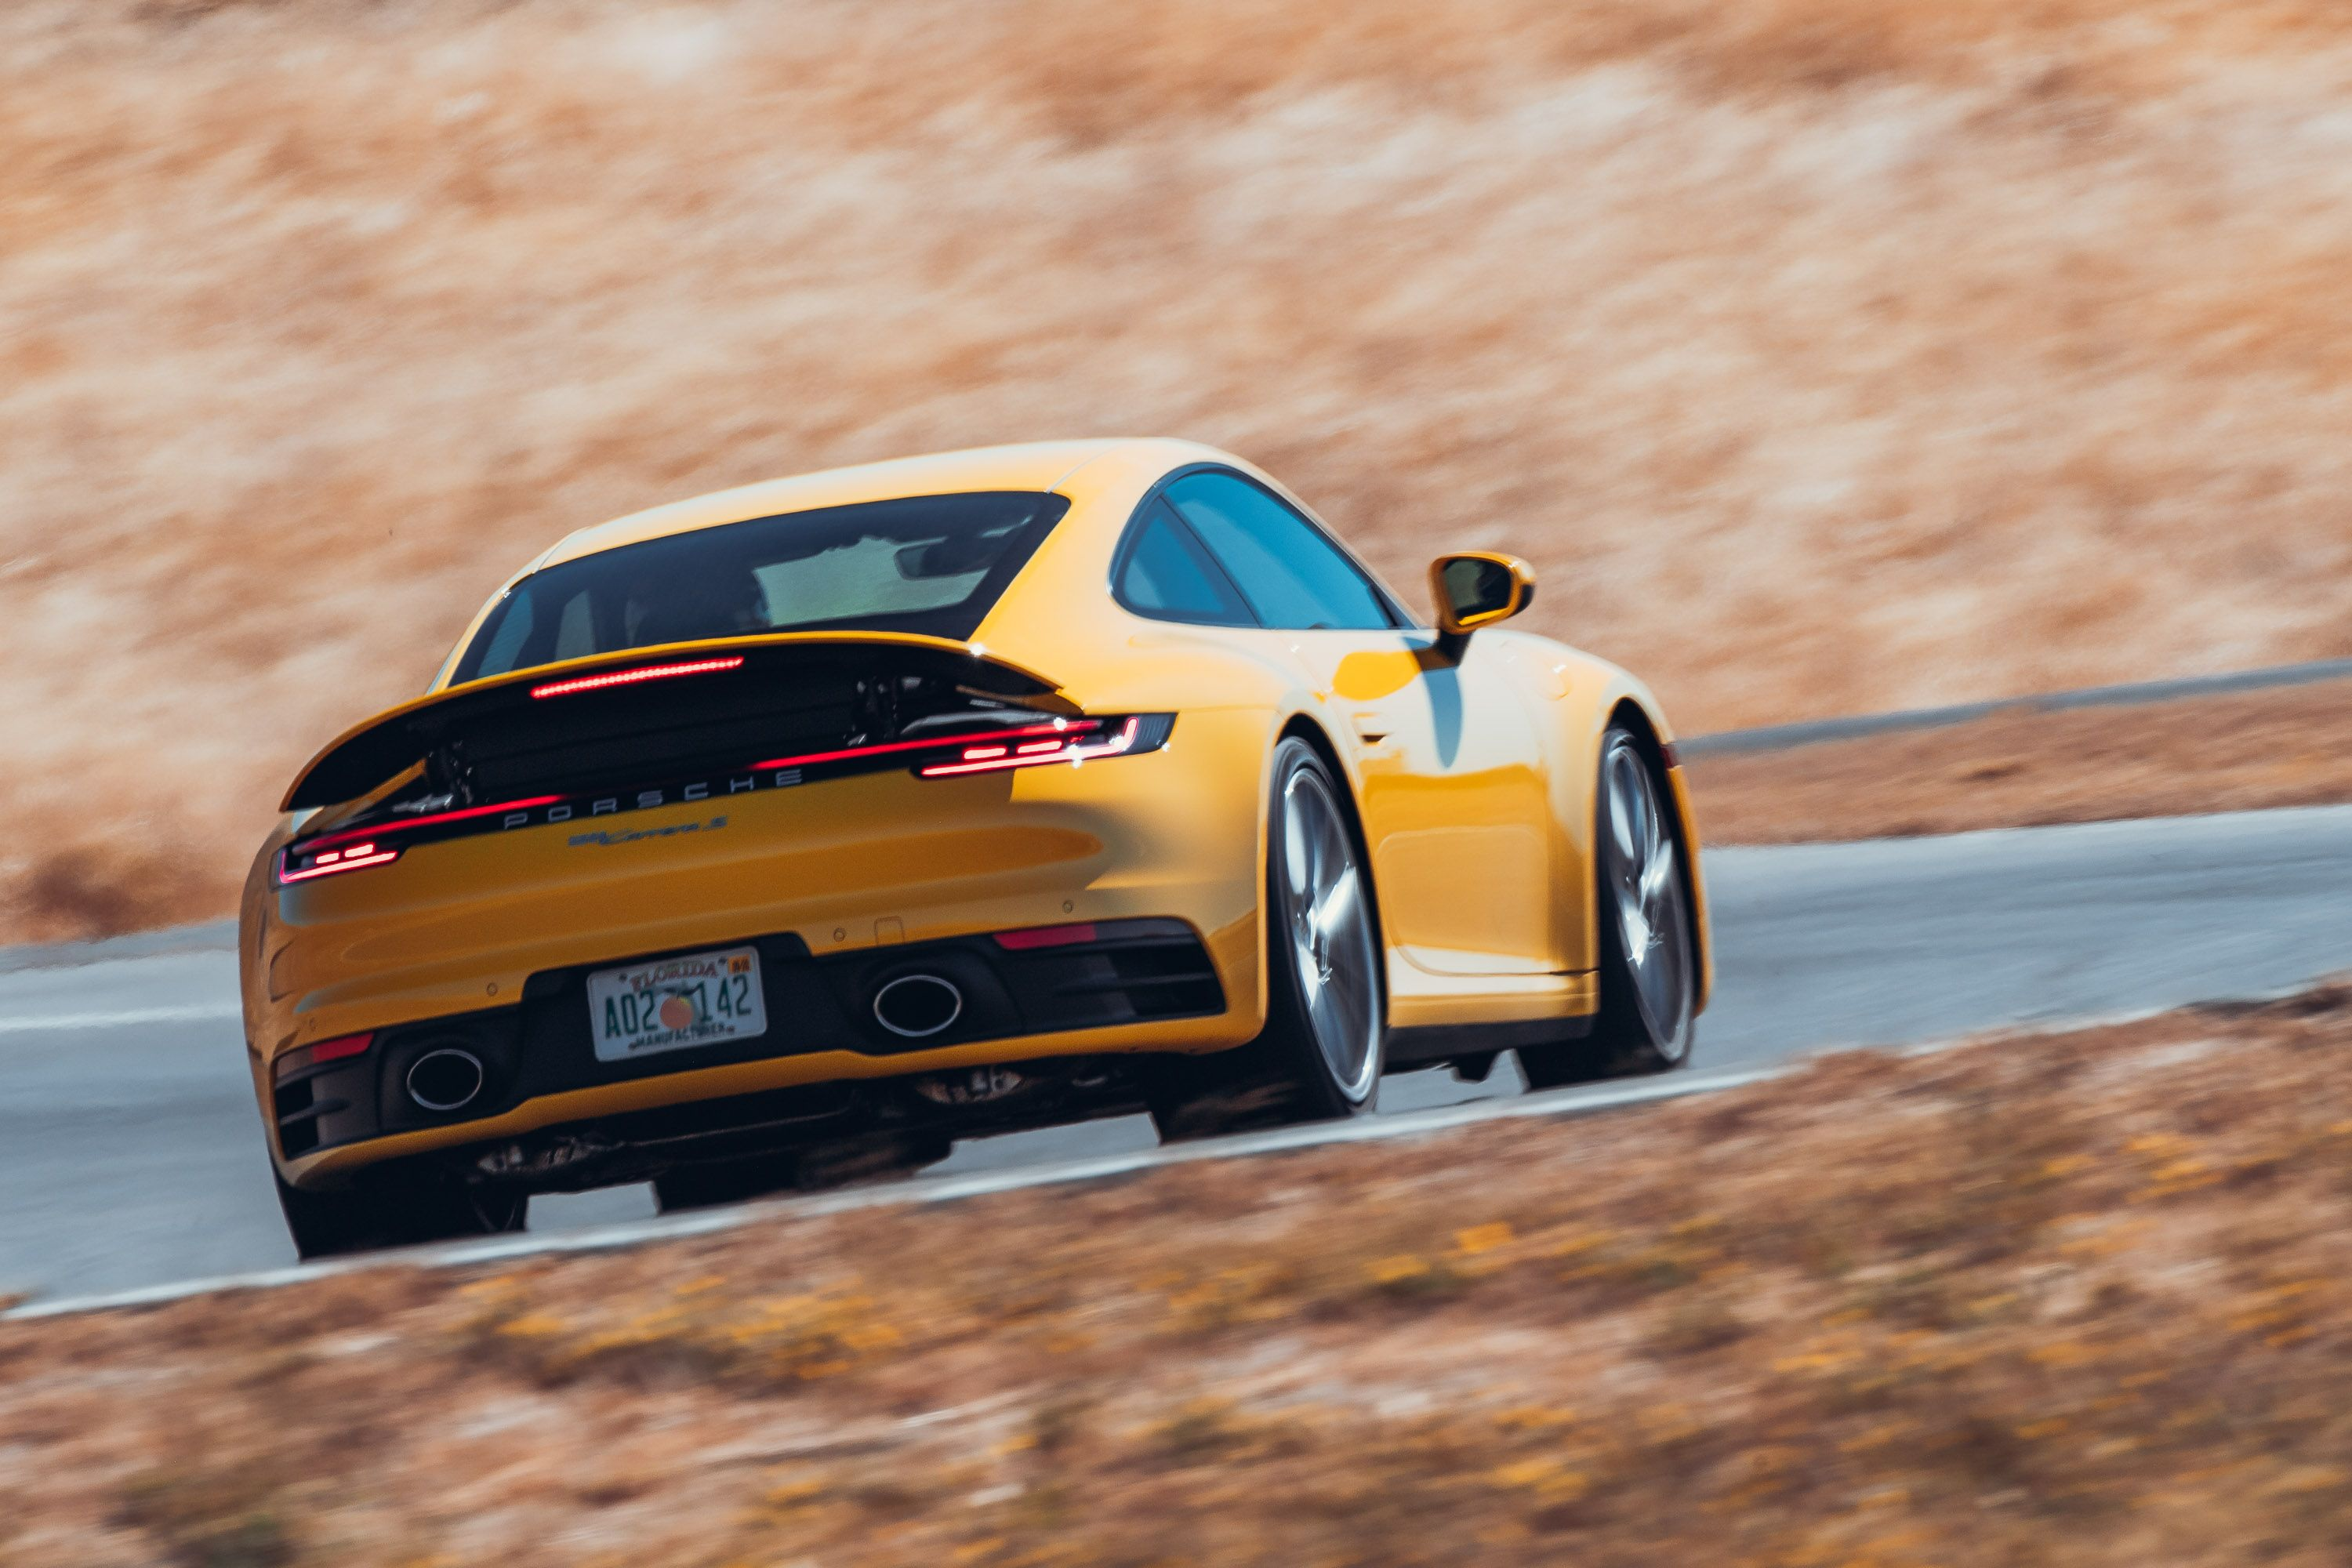 The 2020 Porsche 911 Carrera S Is So Good it Ruins Other Cars